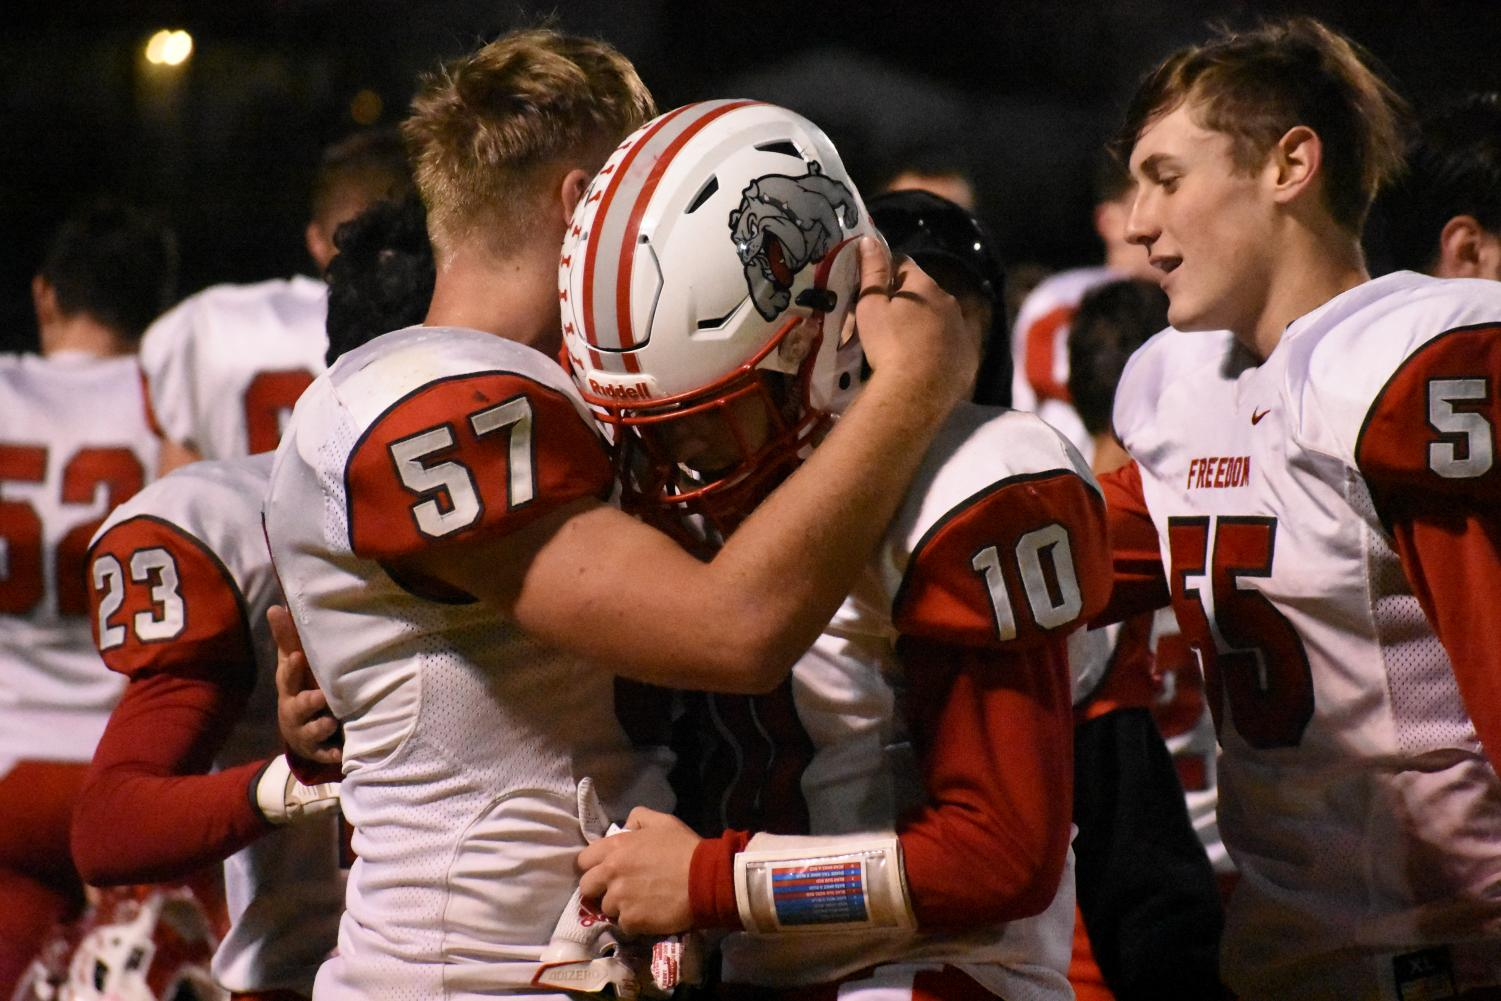 Seniors Kevin Lawrence and Dylan Goodrich hug after playing their last football game of their high school career, following their loss to Washington in the second round of playoffs.